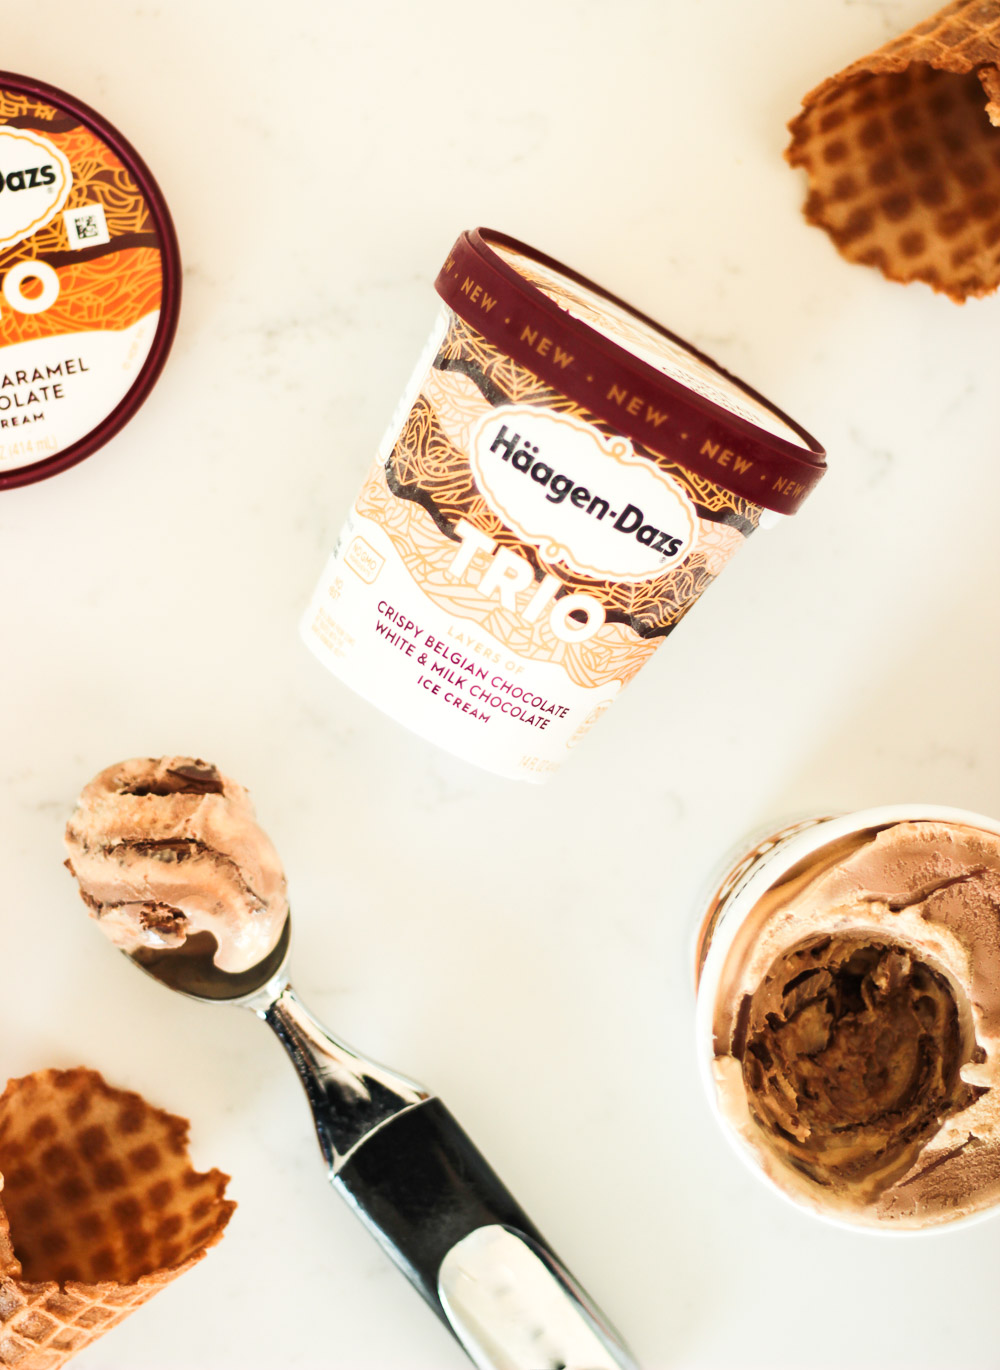 Haagen-Dazs, extraordinary summer